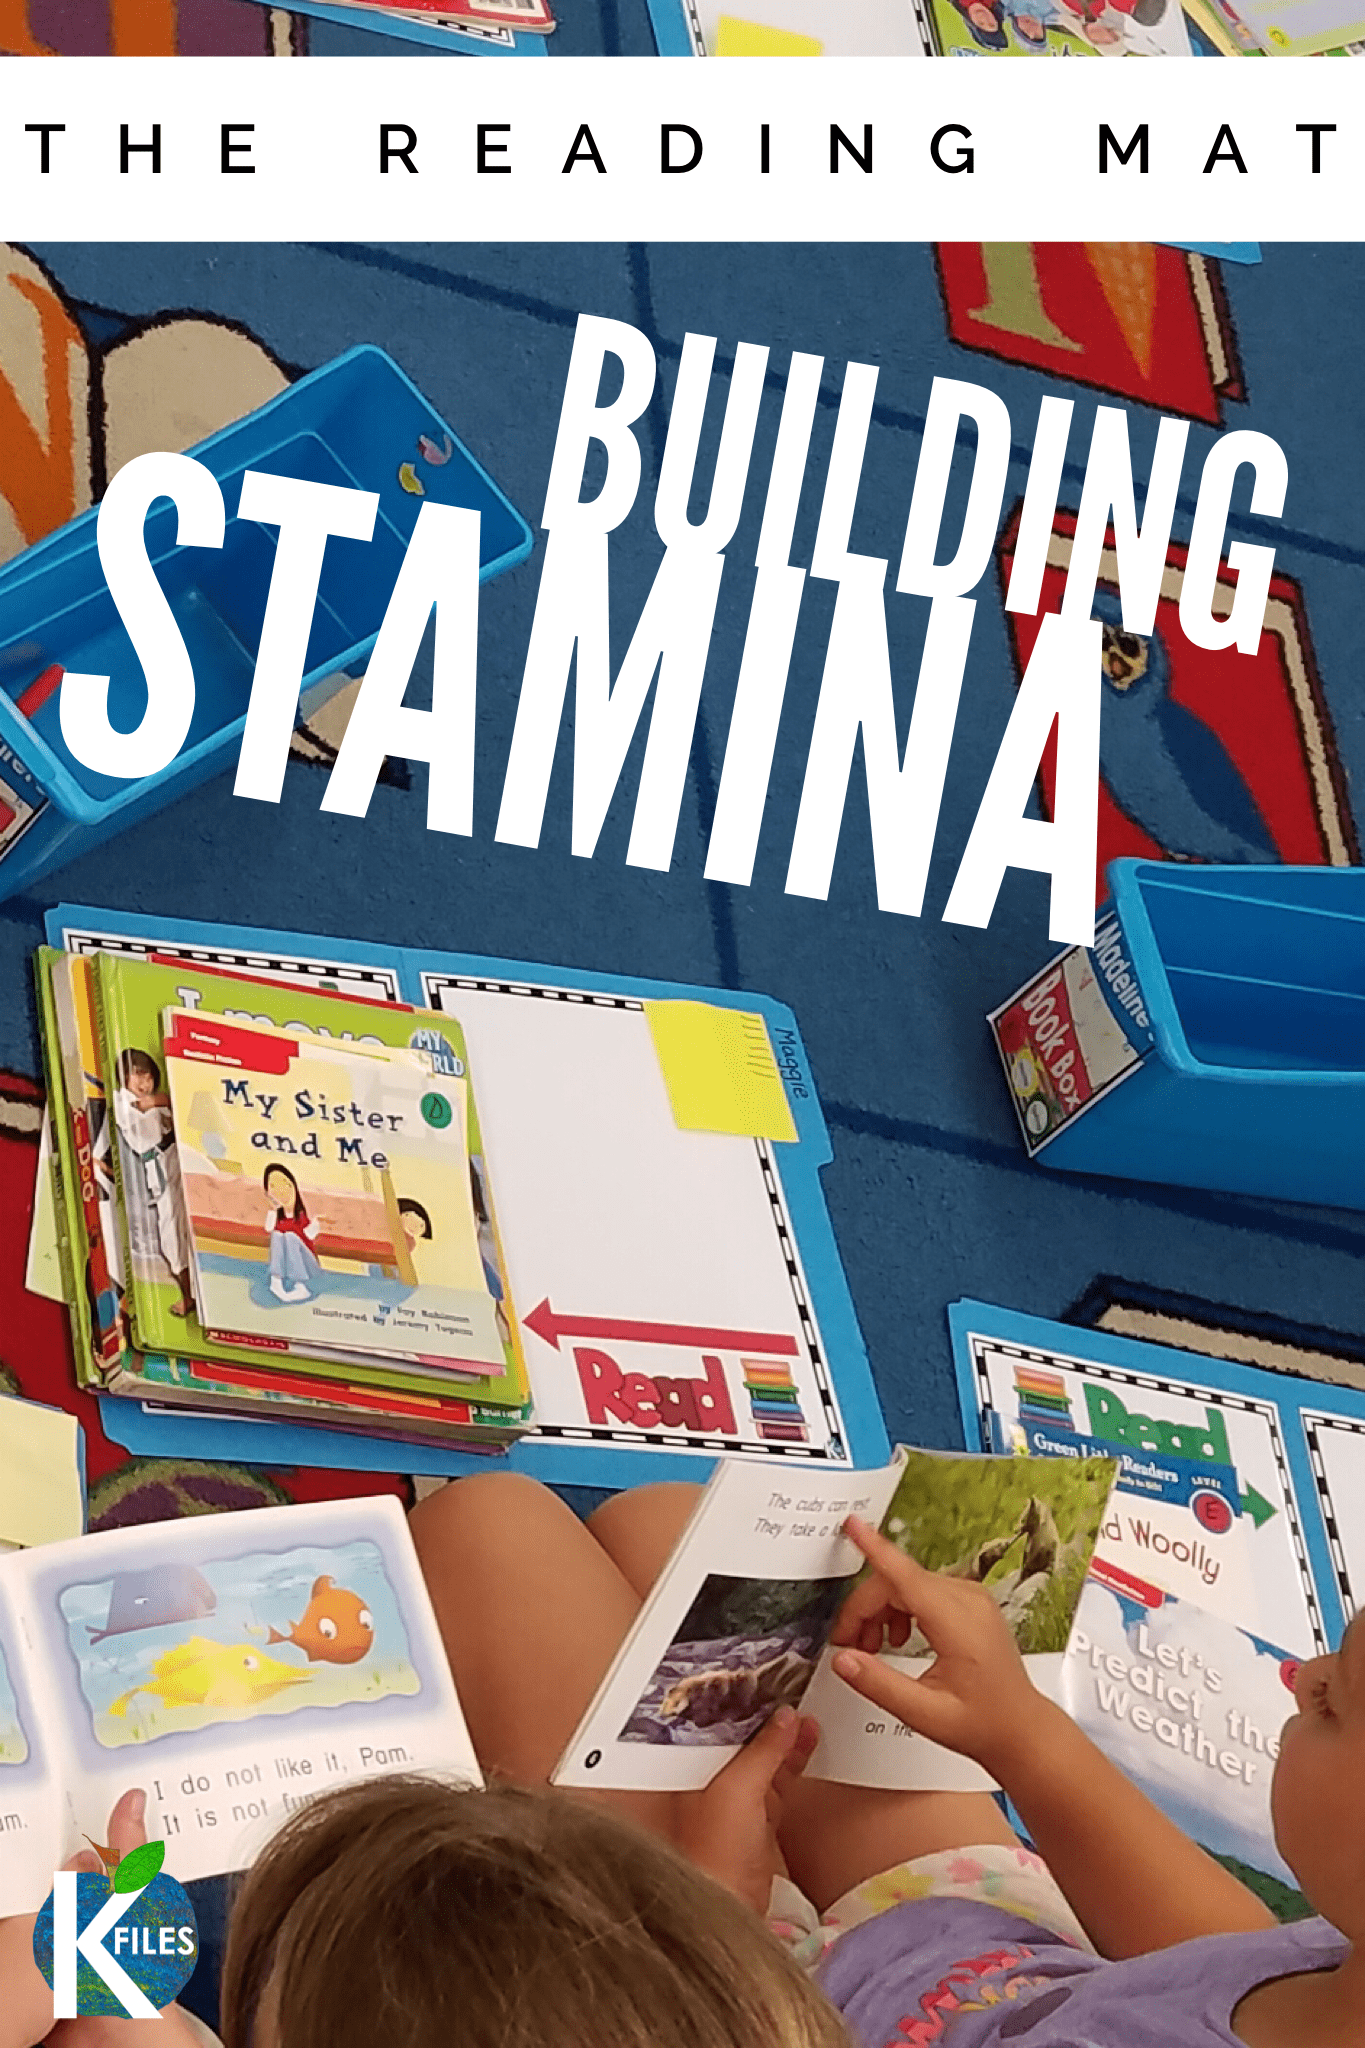 Looking for ways to build your students reading stamina? The Reading Mat will encourage your students to keep reading during your Readers Workshop. This fun Reading Mat folder can be stored in your first grade book boxes all year long. Visual directions included to help your kids stay focused on their reading during Readers Workshop #readersworkshop #firstgrade #readingstamina #readingmat #kindergarten #secondgrade